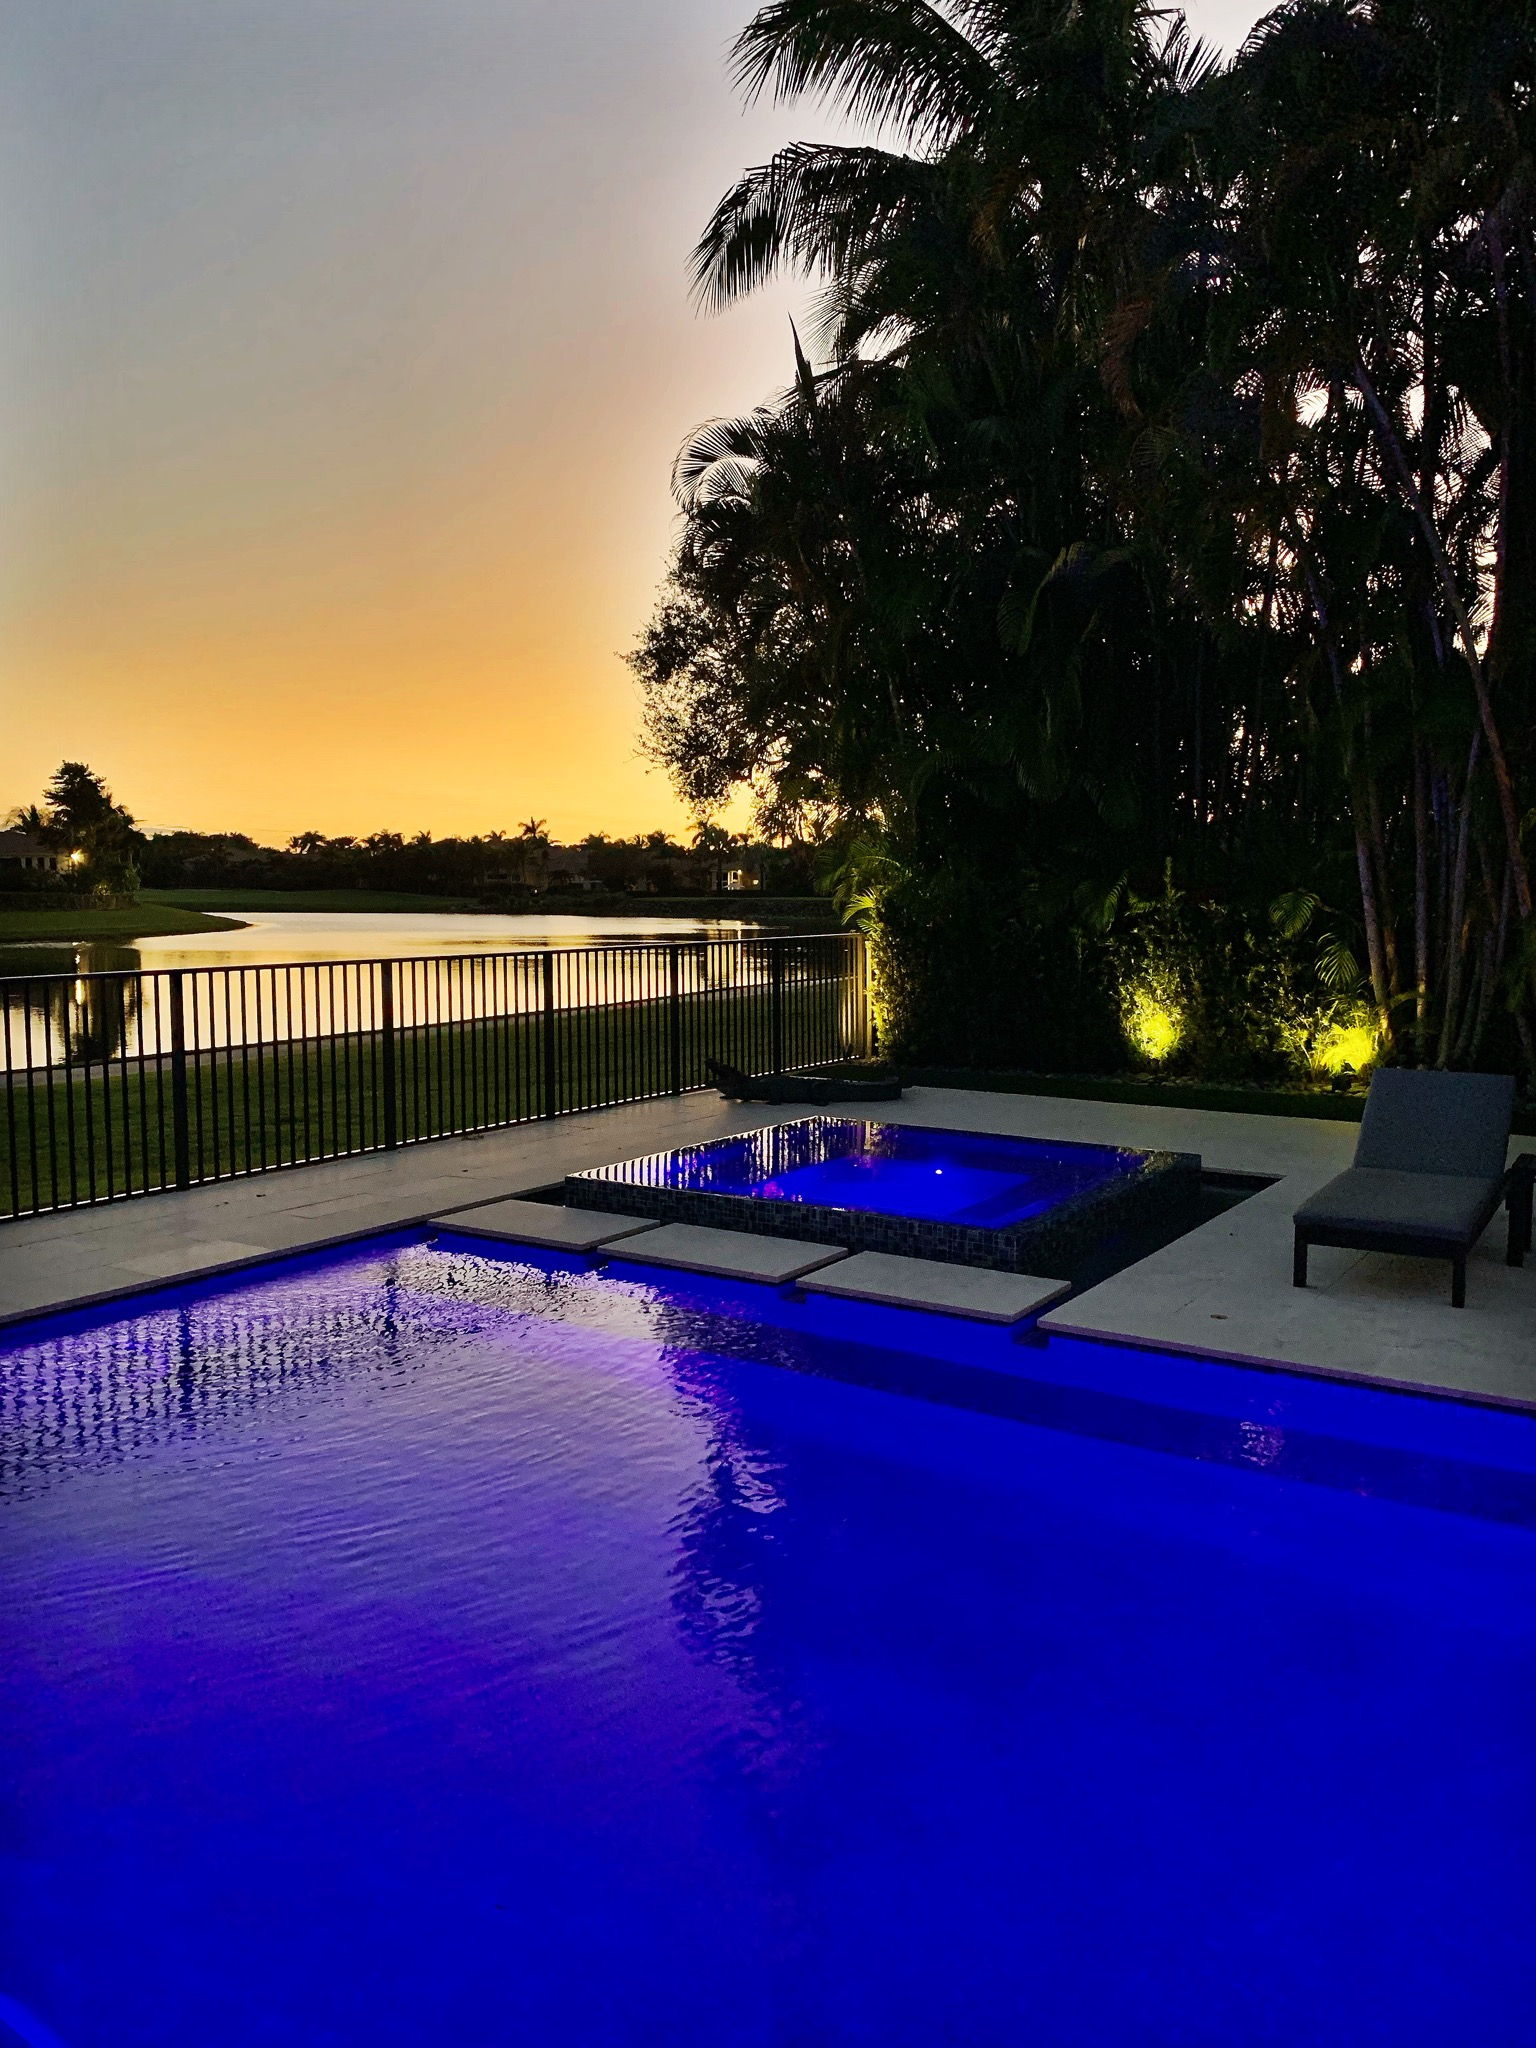 rhr pools of jupiter fl led lit pool and infinity spa